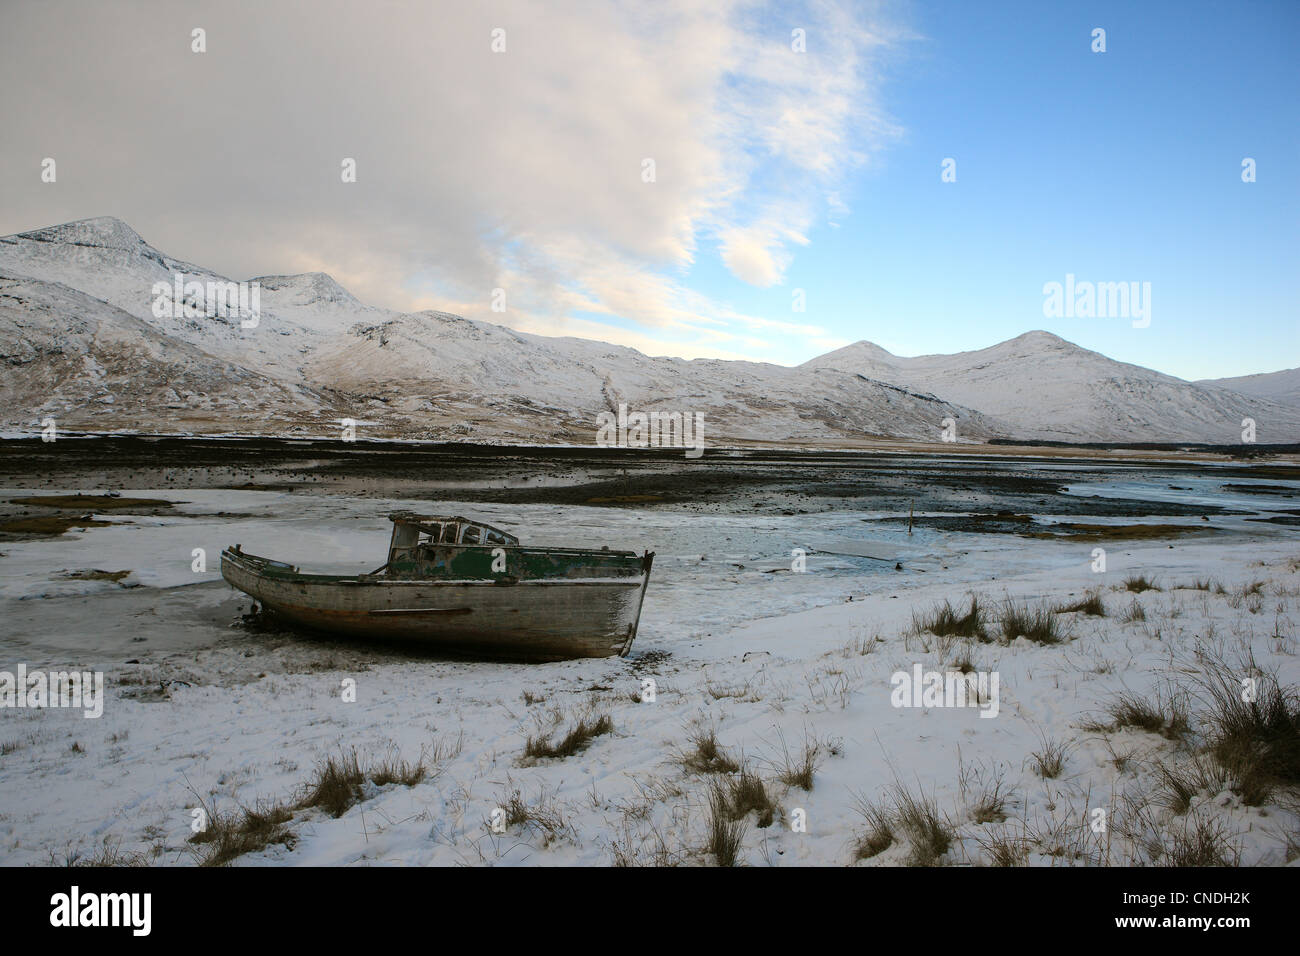 Winter view of Ben More (left) and Loch Scridain on the Isle of Mull in Scotland's Inner Hebrides - Stock Image